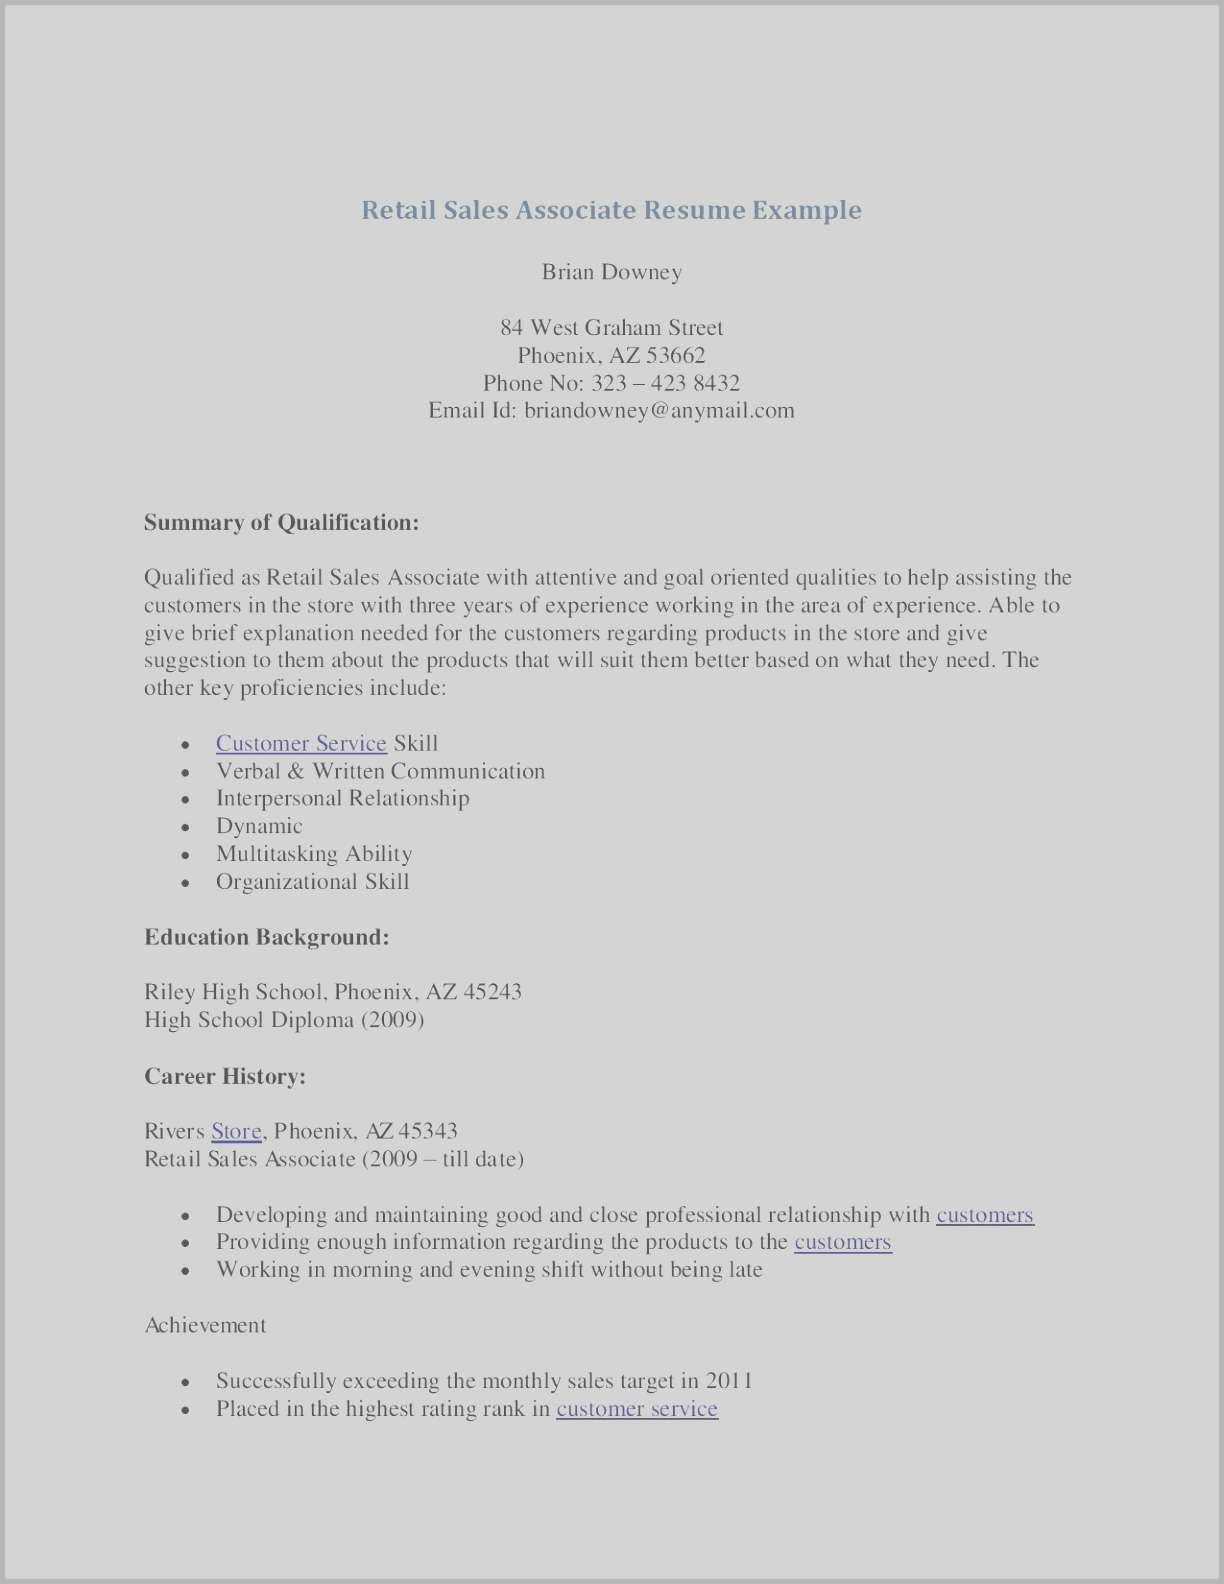 retail sales associate resume template example-Sales associate Resume Examples Luxury New Example Customer Service Resume Best Resume Examples 0d Skills 18-s